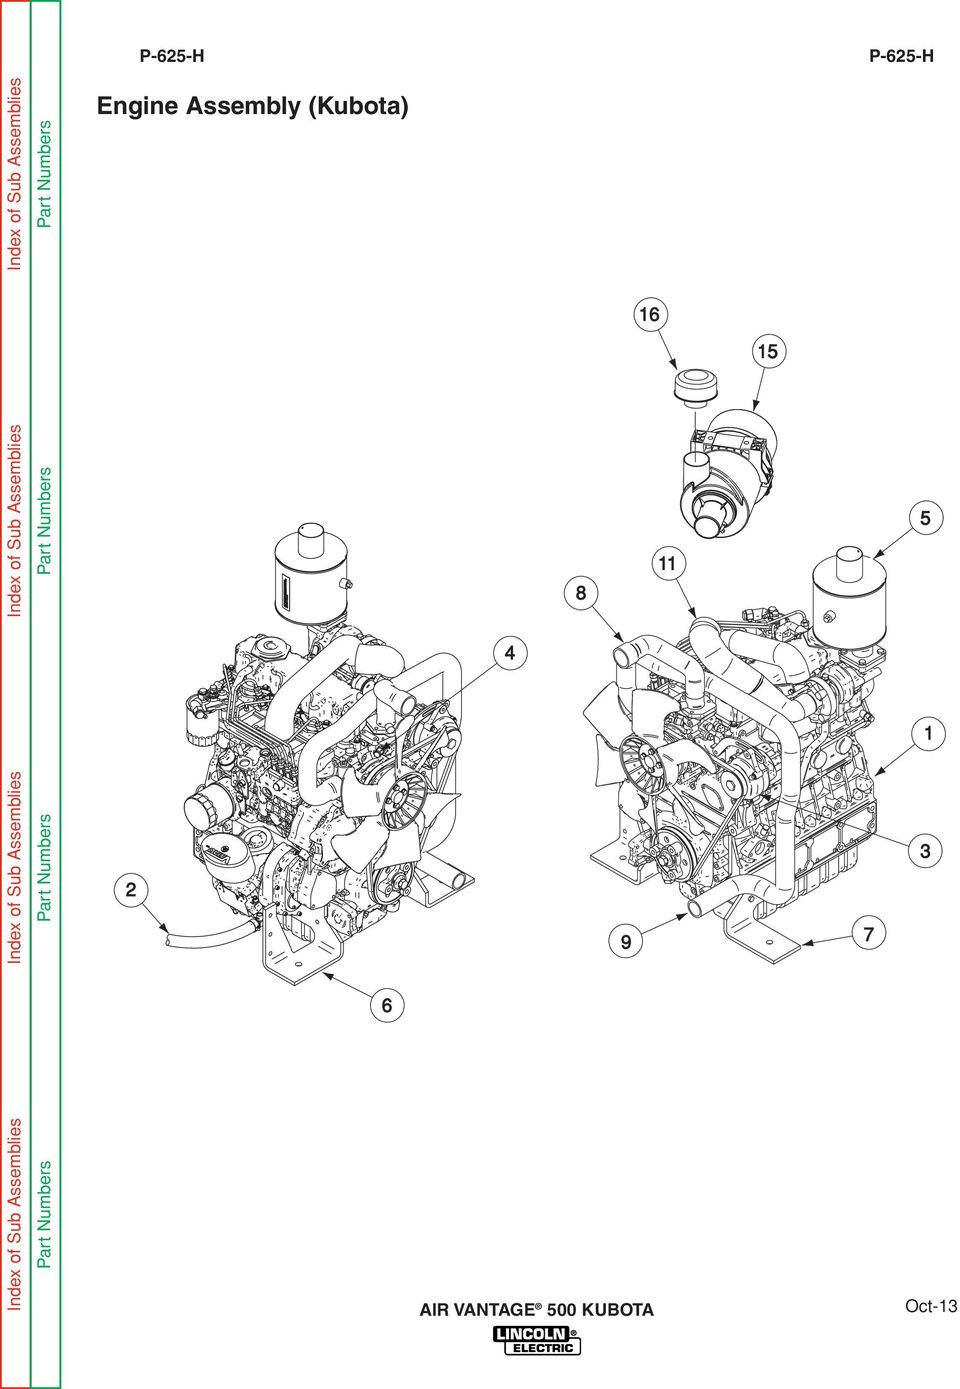 Part Numbers Engine Assembly